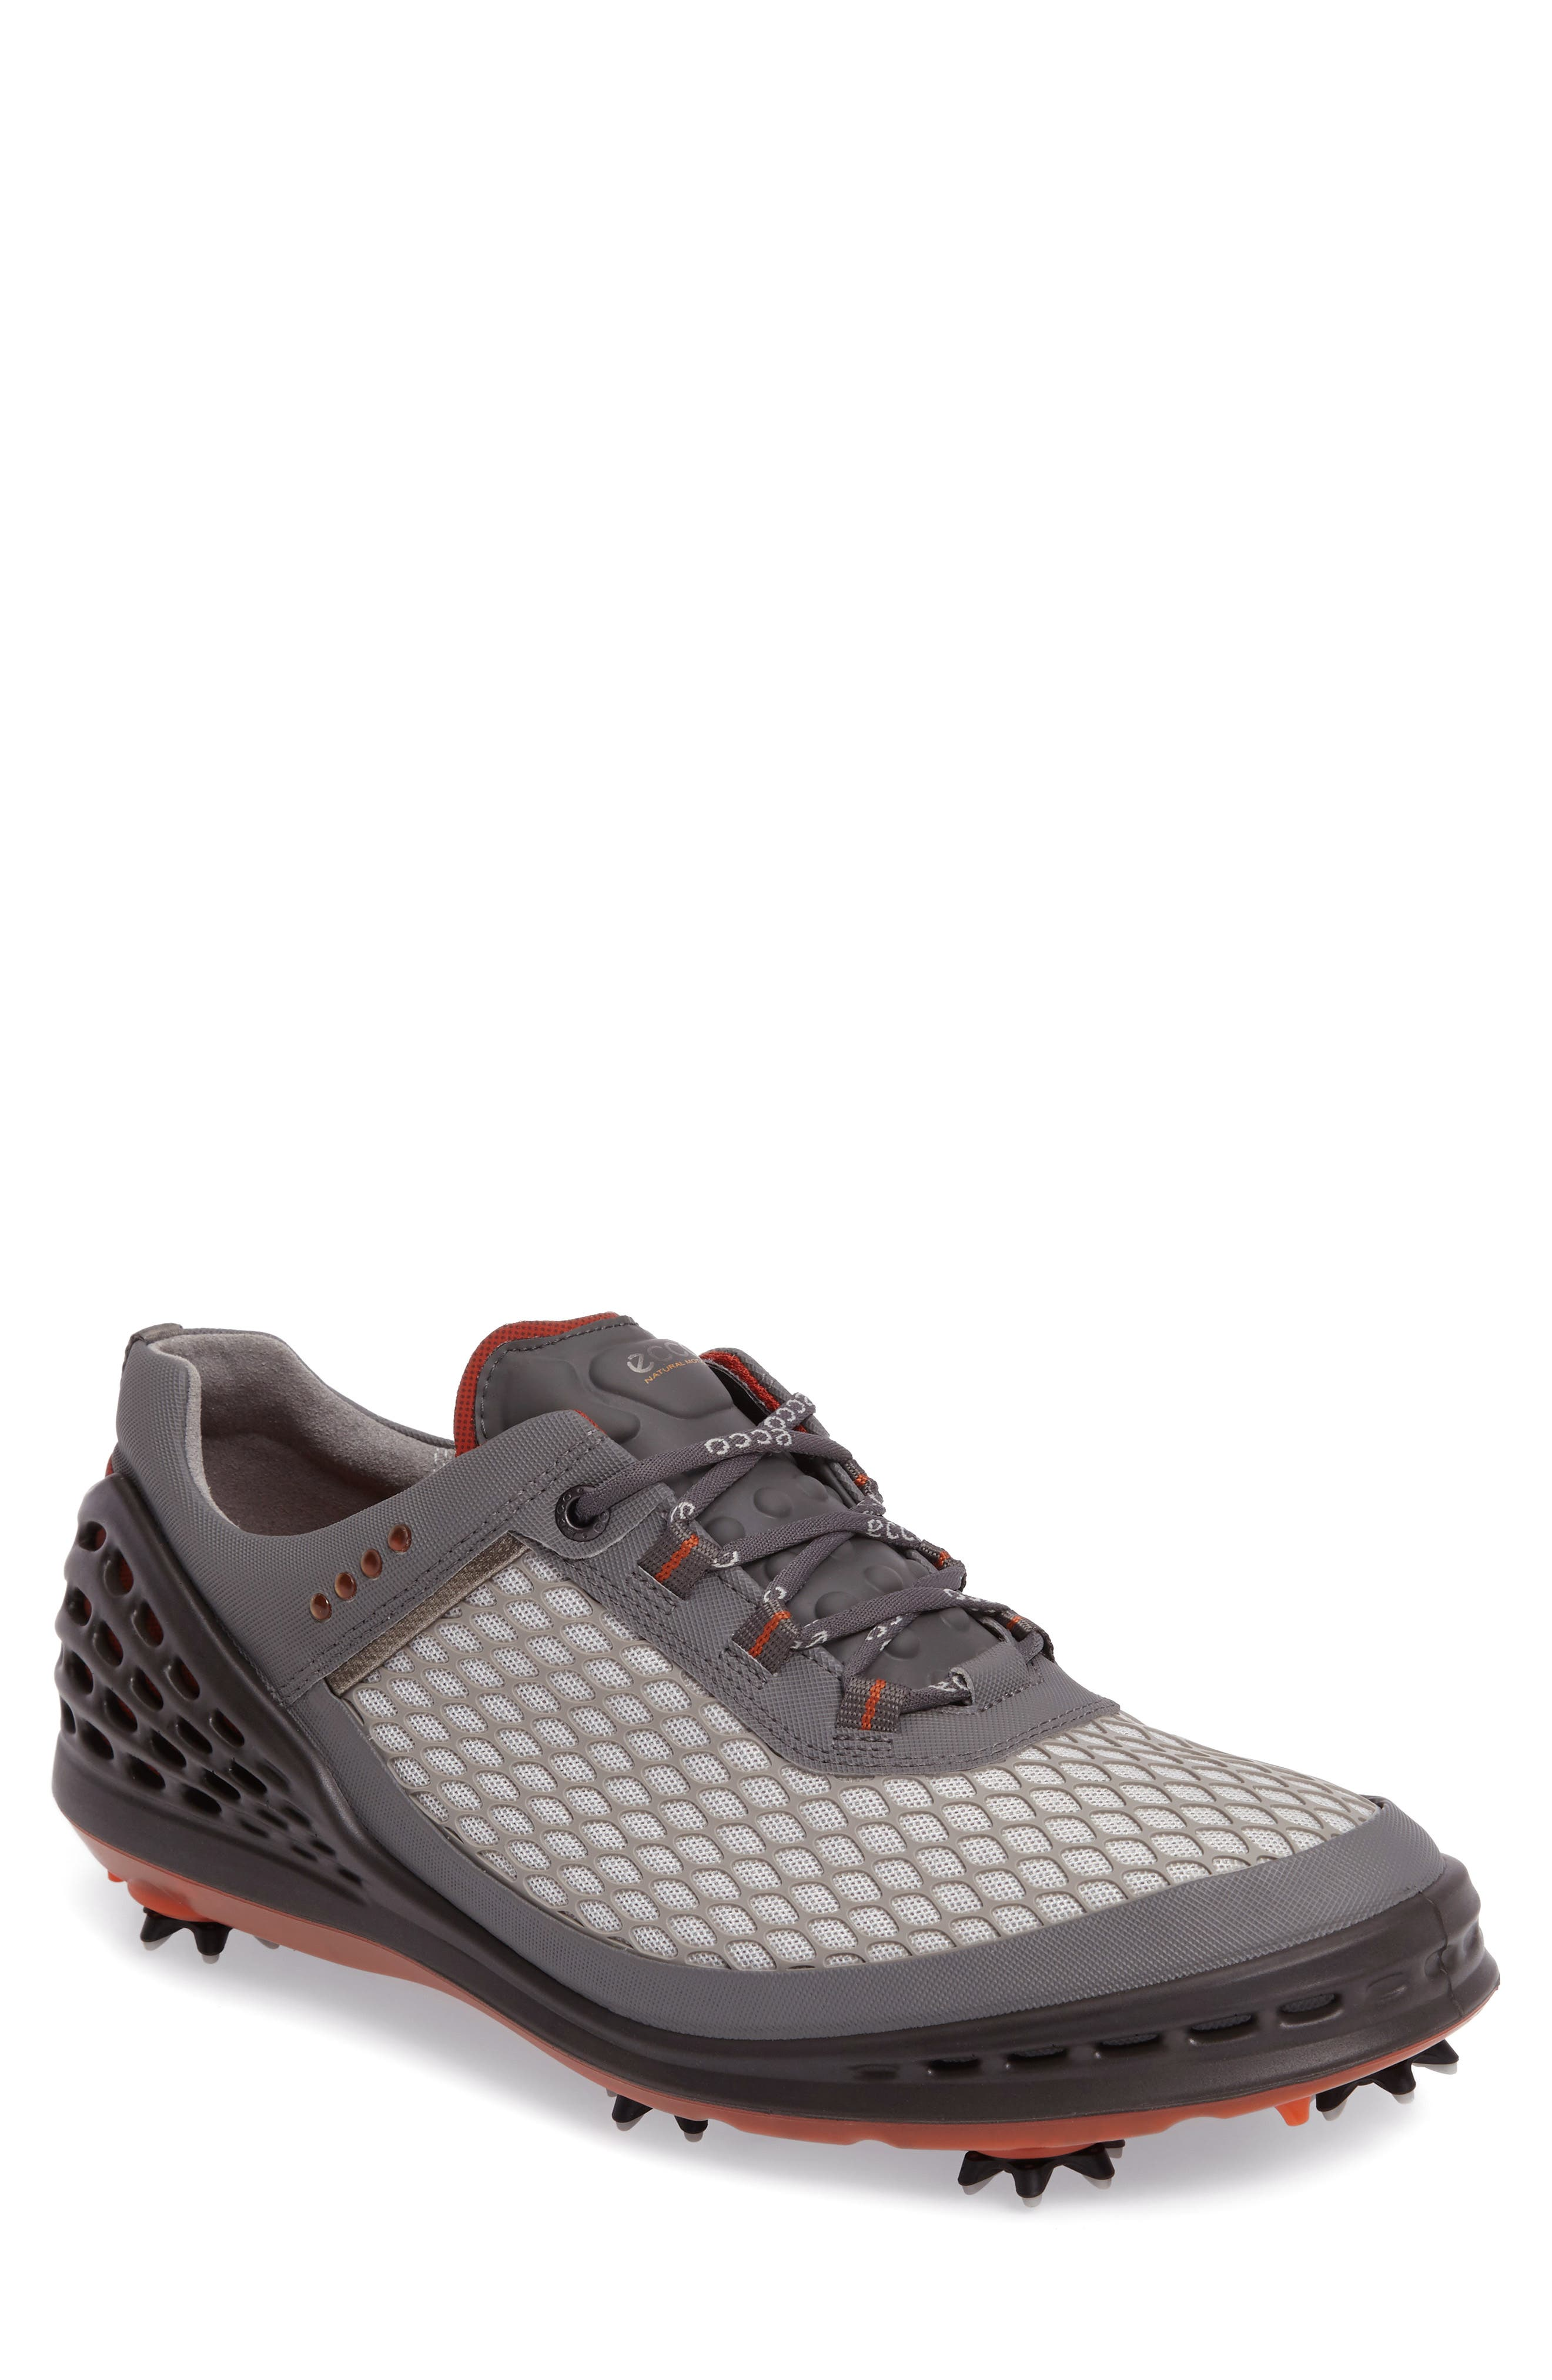 Waterproof Hydromax leather and a modern design define an effective golf shoe set on an innovative SPYDRA-GRIP sole for the solid foundation you need to smooth out your swing.